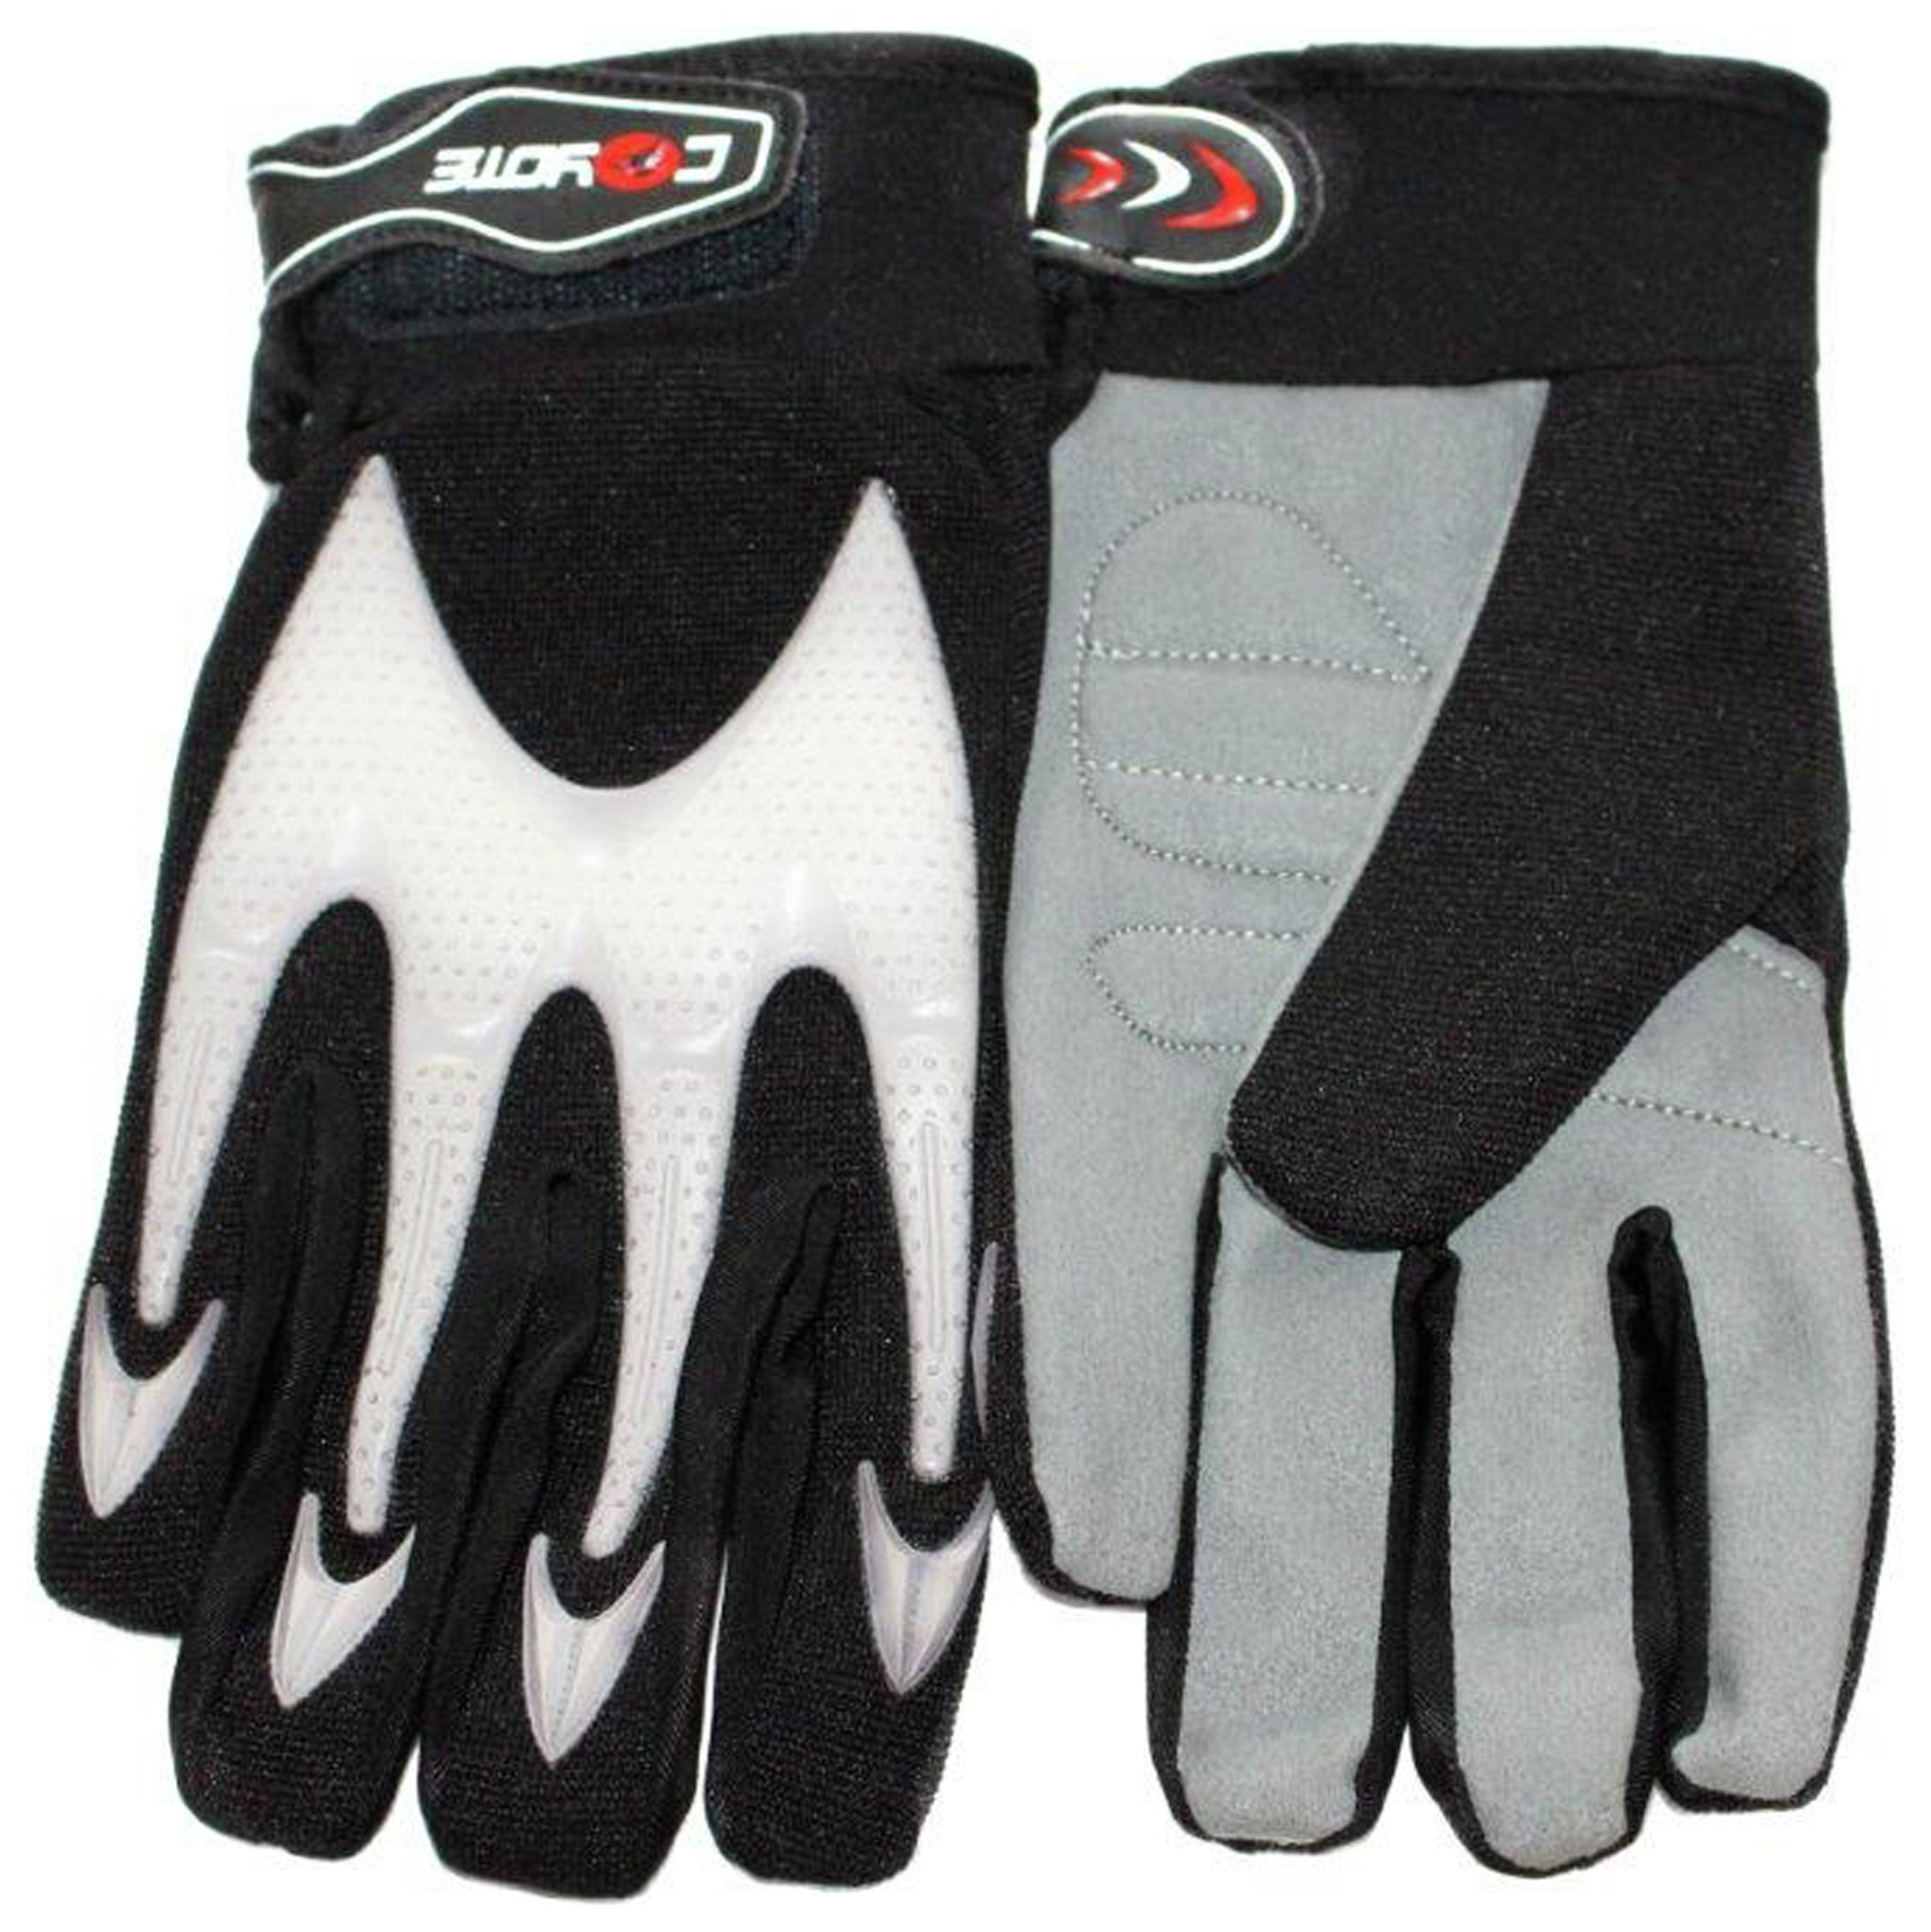 Driving gloves argos - Coyote Large Bmx Gloves Black And White